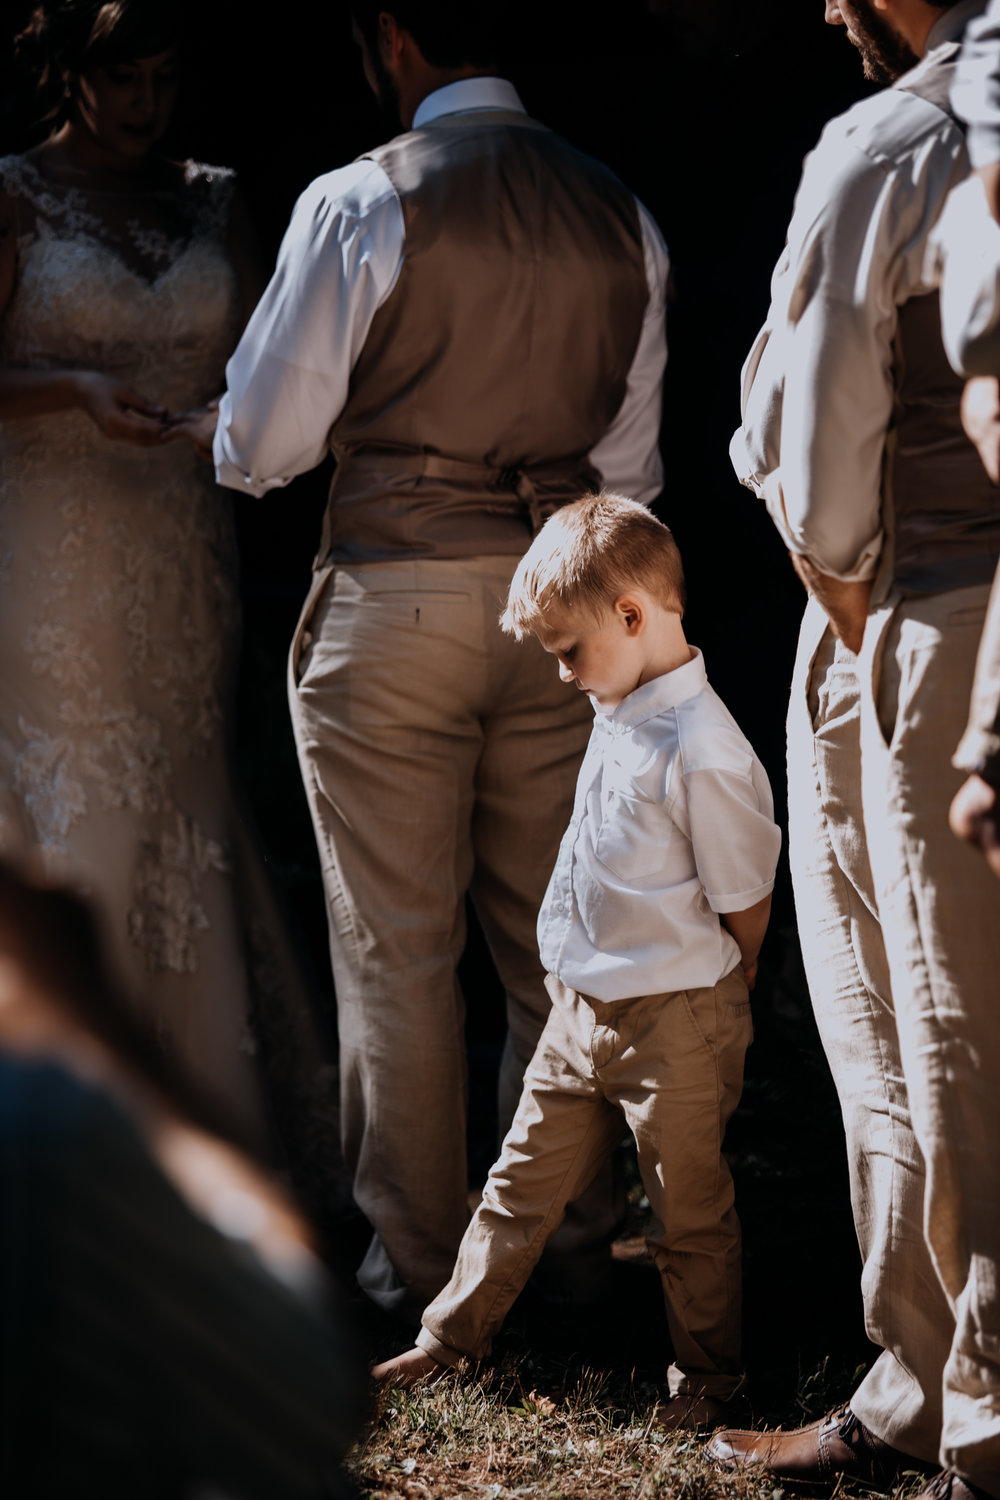 Cambria_Creative_Photographer_York_Camp_Cann-edi-on_wedding-3591.jpg